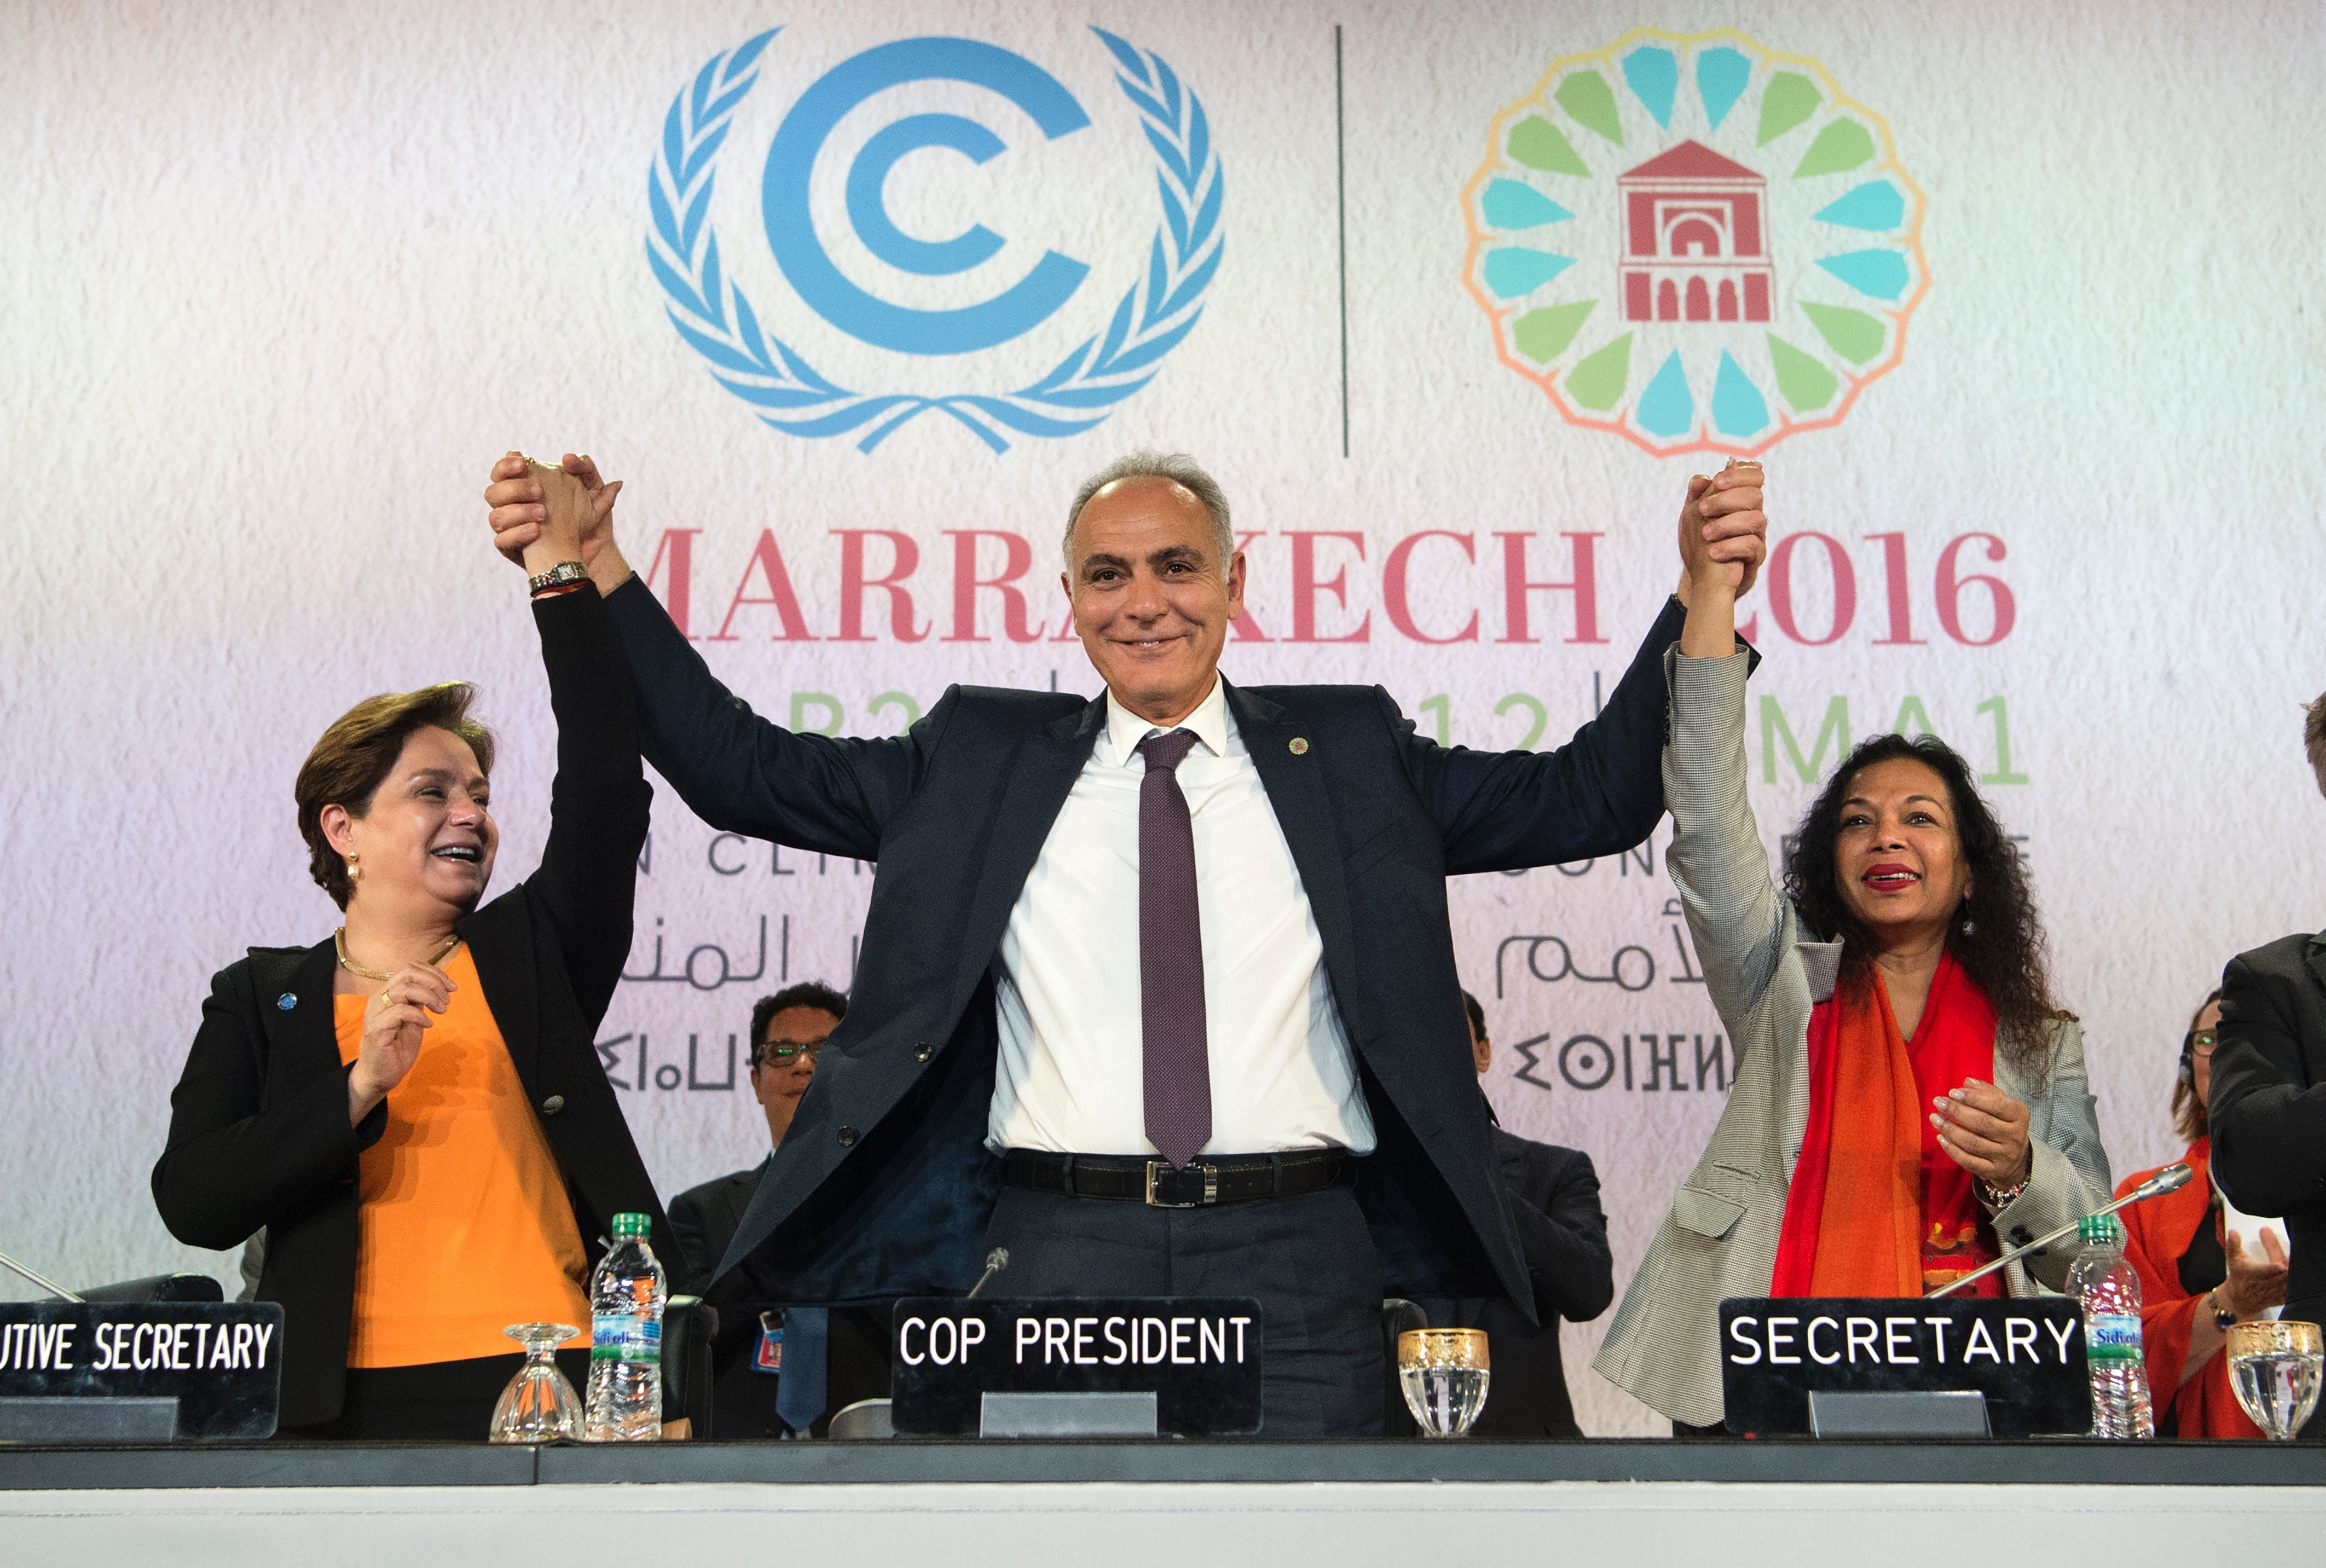 COP 22 president Salaheddine Mezouar poses for a picture with COP22 Executive Secretary Patricia Espinosa, and COP22 Secretary during a press conference at the COP22 climate conference on Nov. 17, 2016, in Marrakesh.